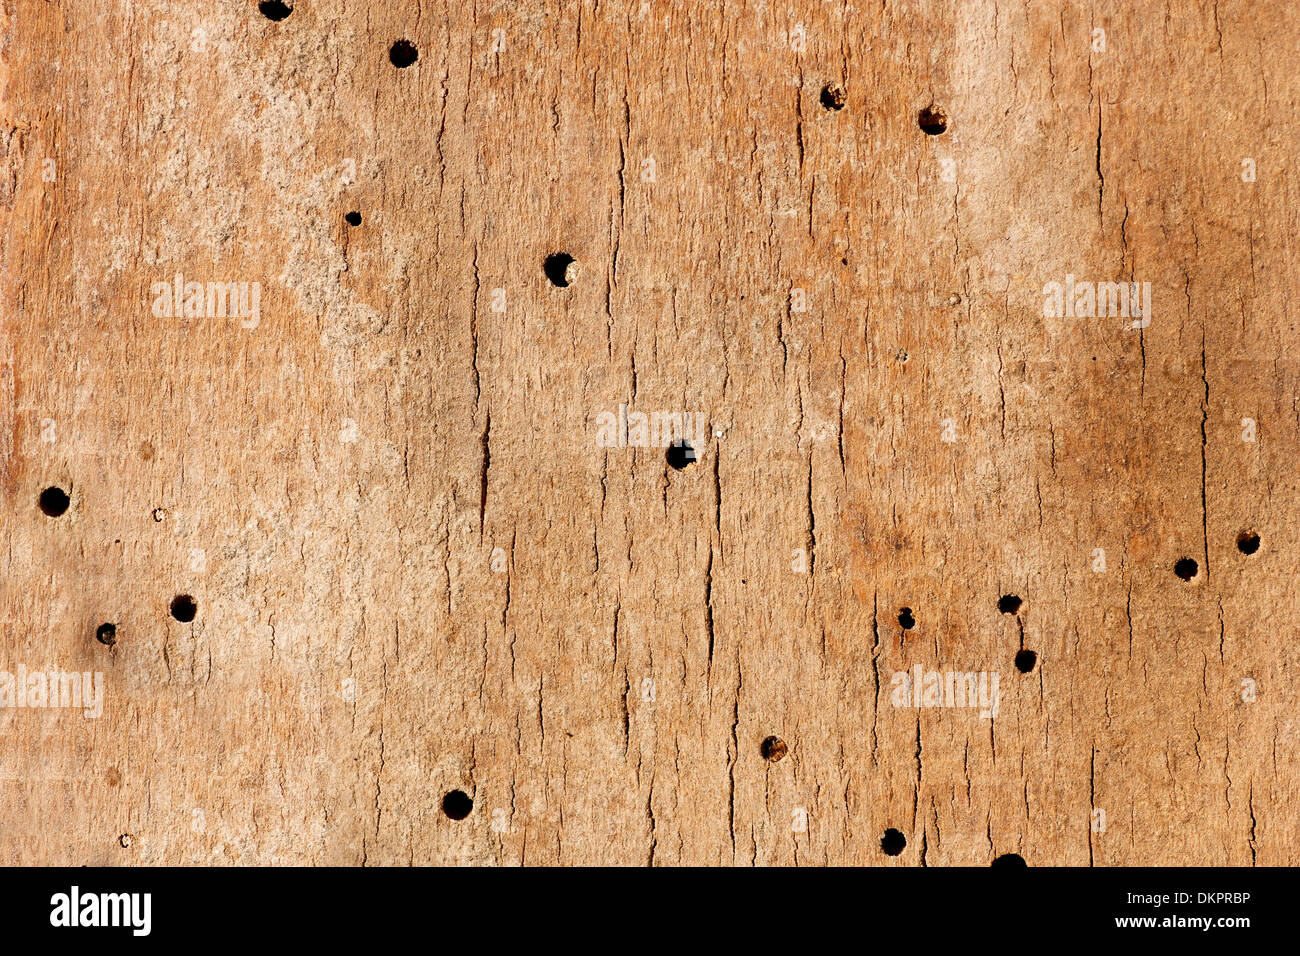 Old Grunge Wooden Texture Or Background With Termite Holes Eaten By Stock Photo Alamy